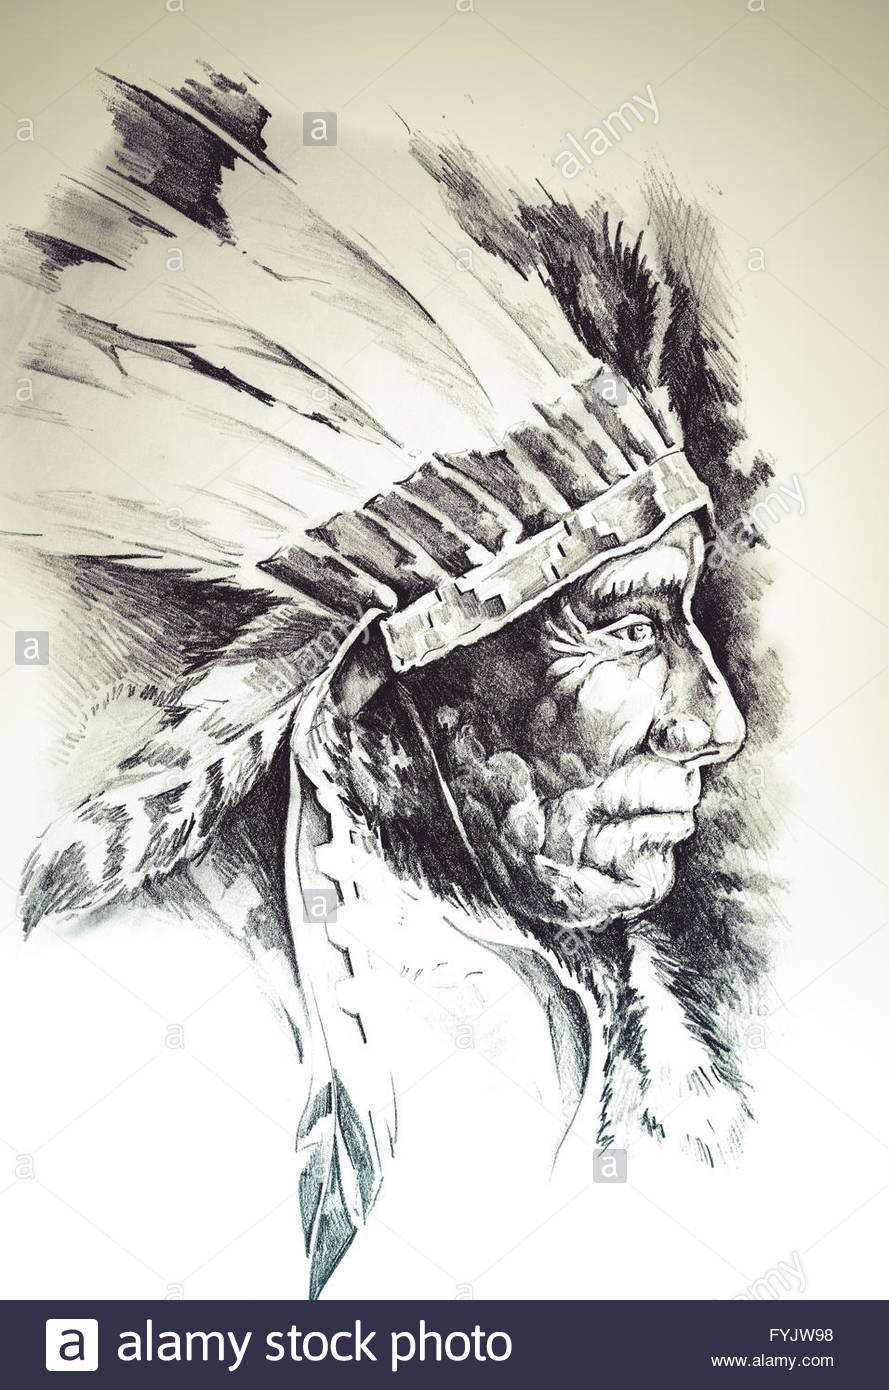 889x1390 Sketch Of Tattoo Art, Native American Indian Head, Chief, Isolated